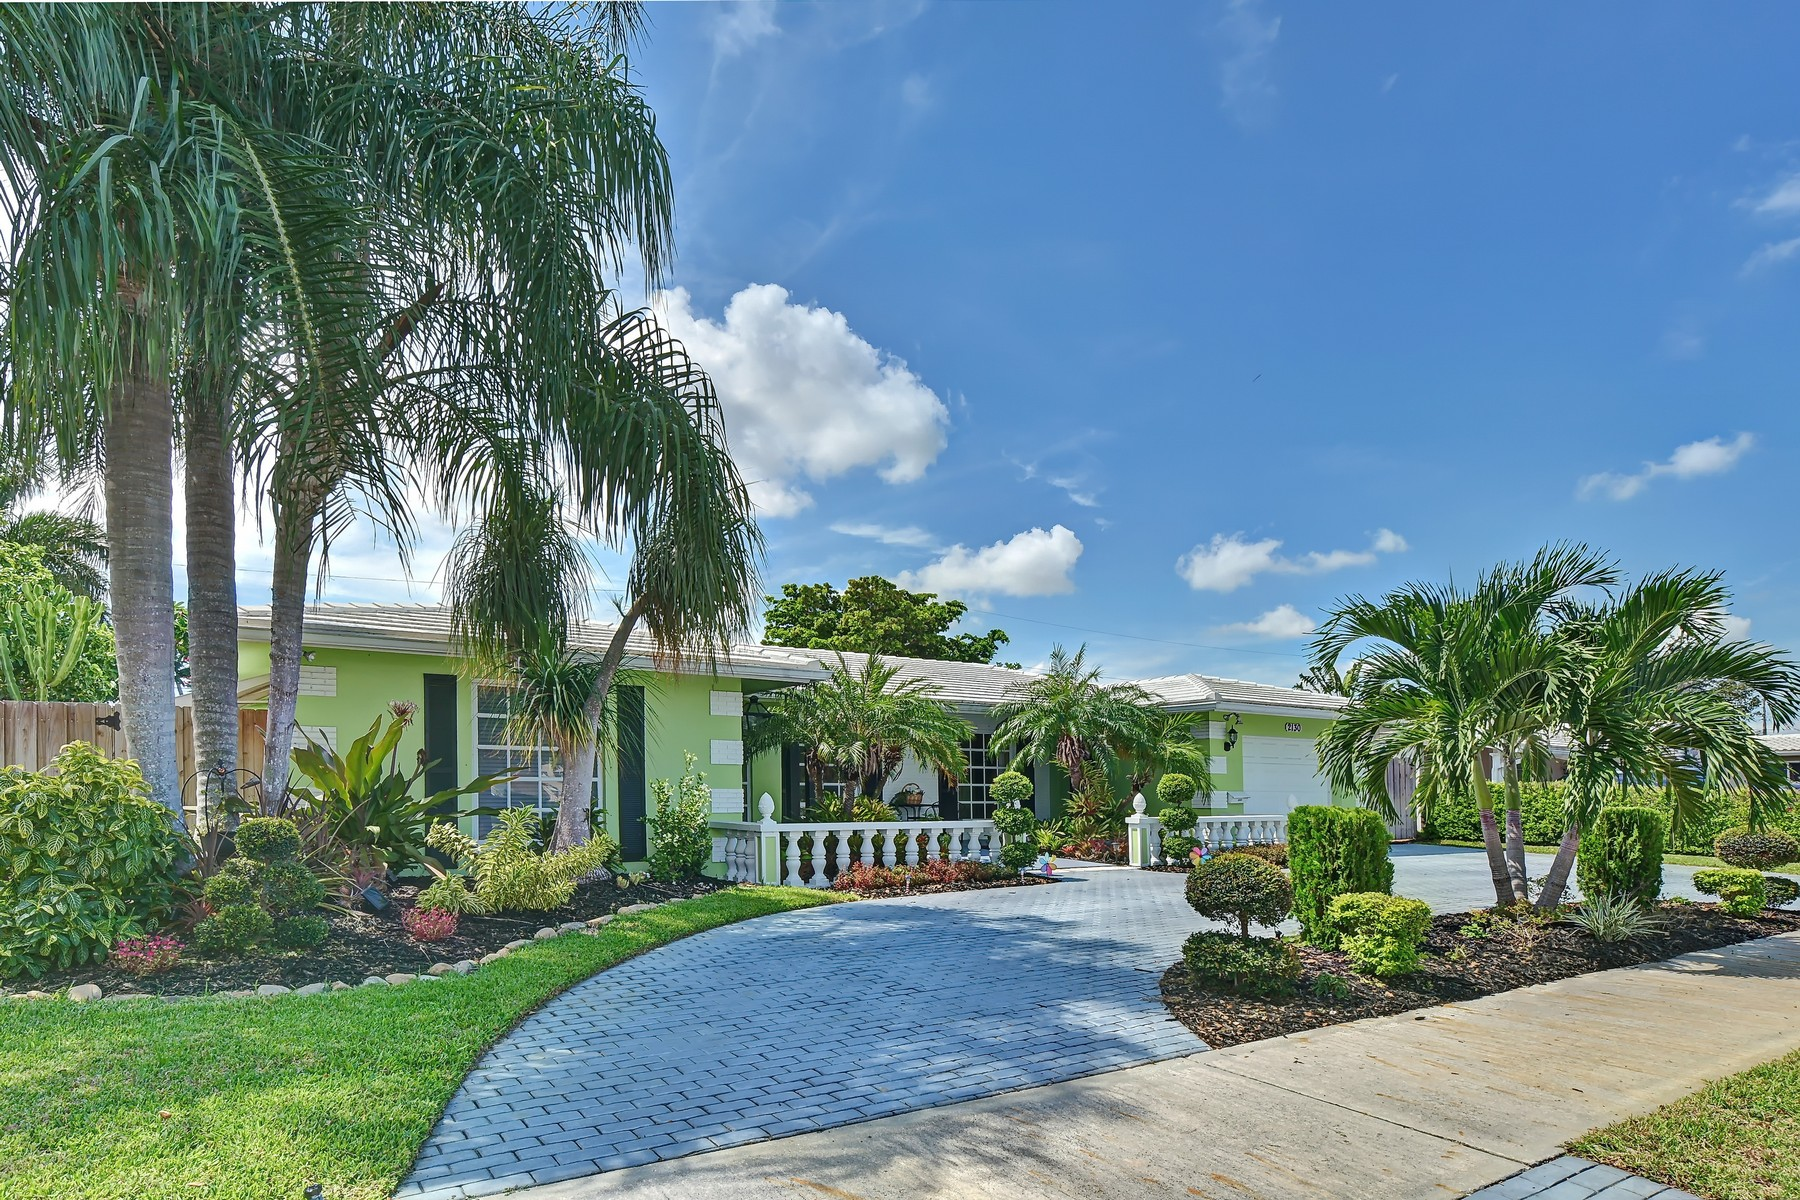 Property For Sale at 2130 NE 58 ST